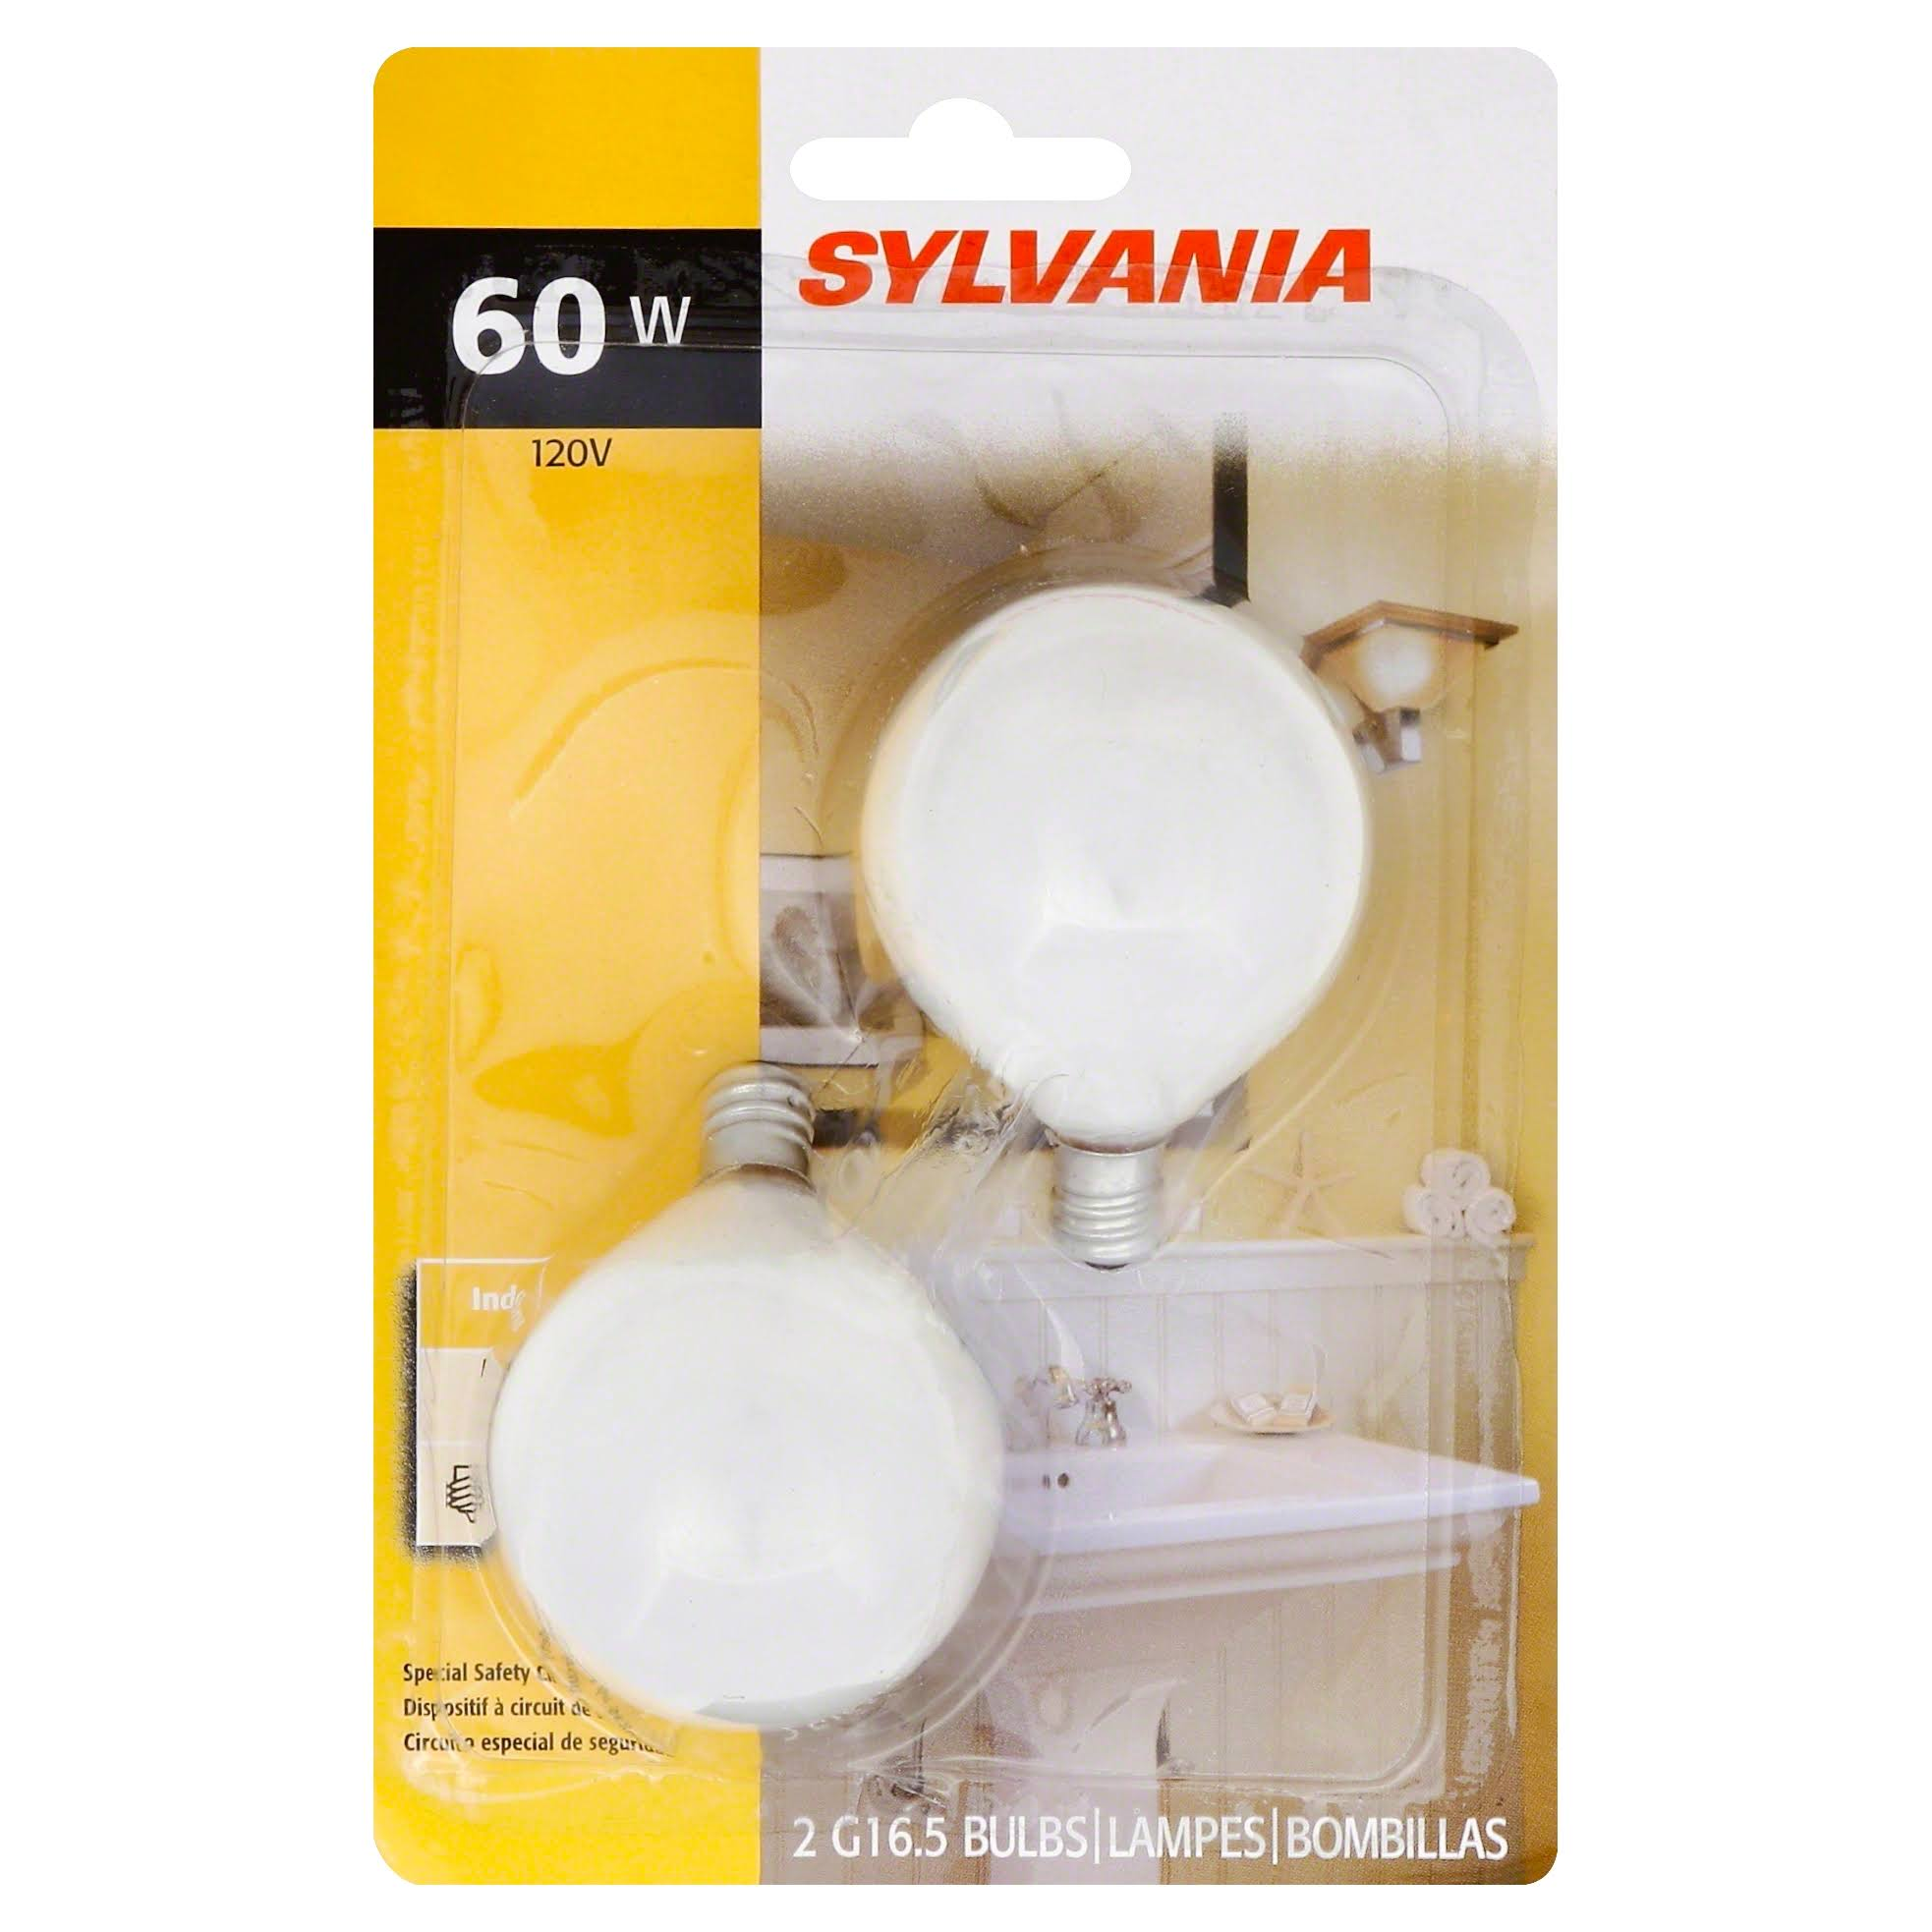 Sylvania Decor Globe - Soft White, 60W, 120V, 2 Bulbs